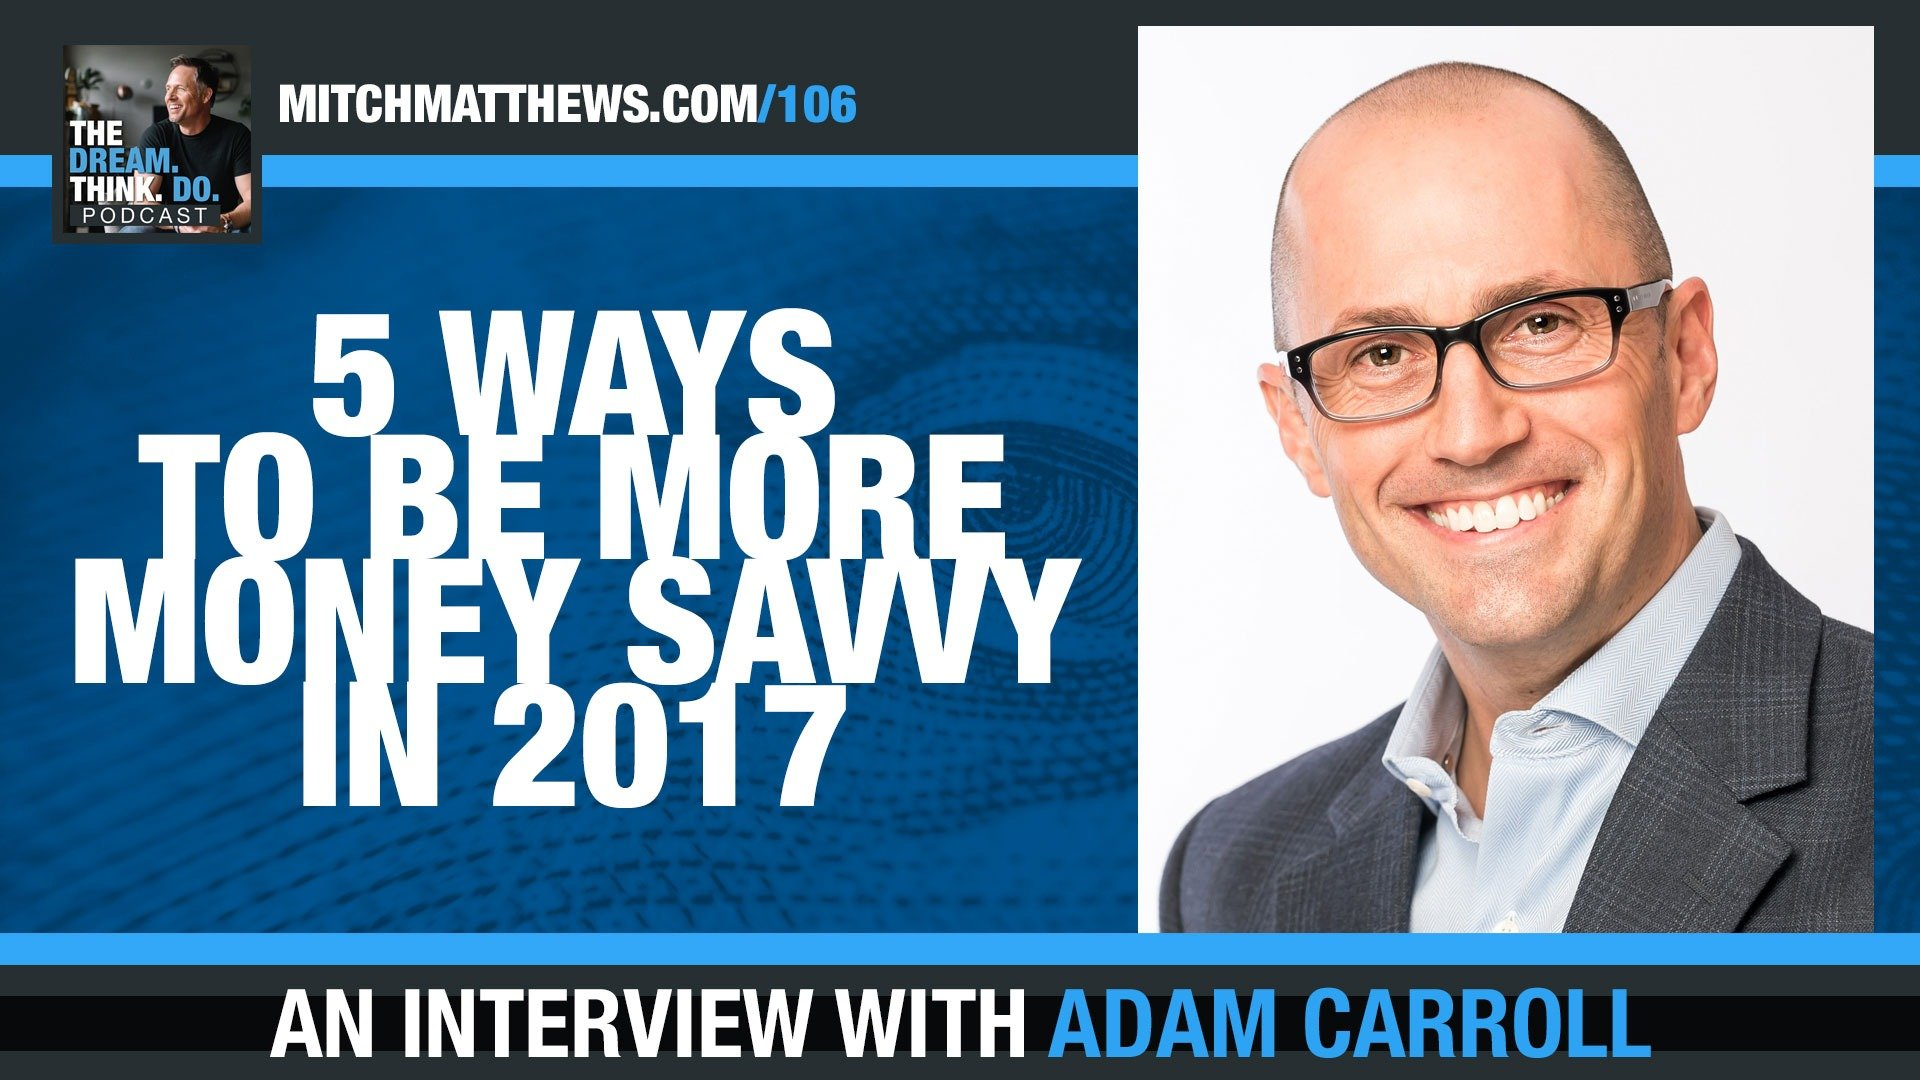 Adam Carroll | 5 Ways to be more Money Savvy in 2017